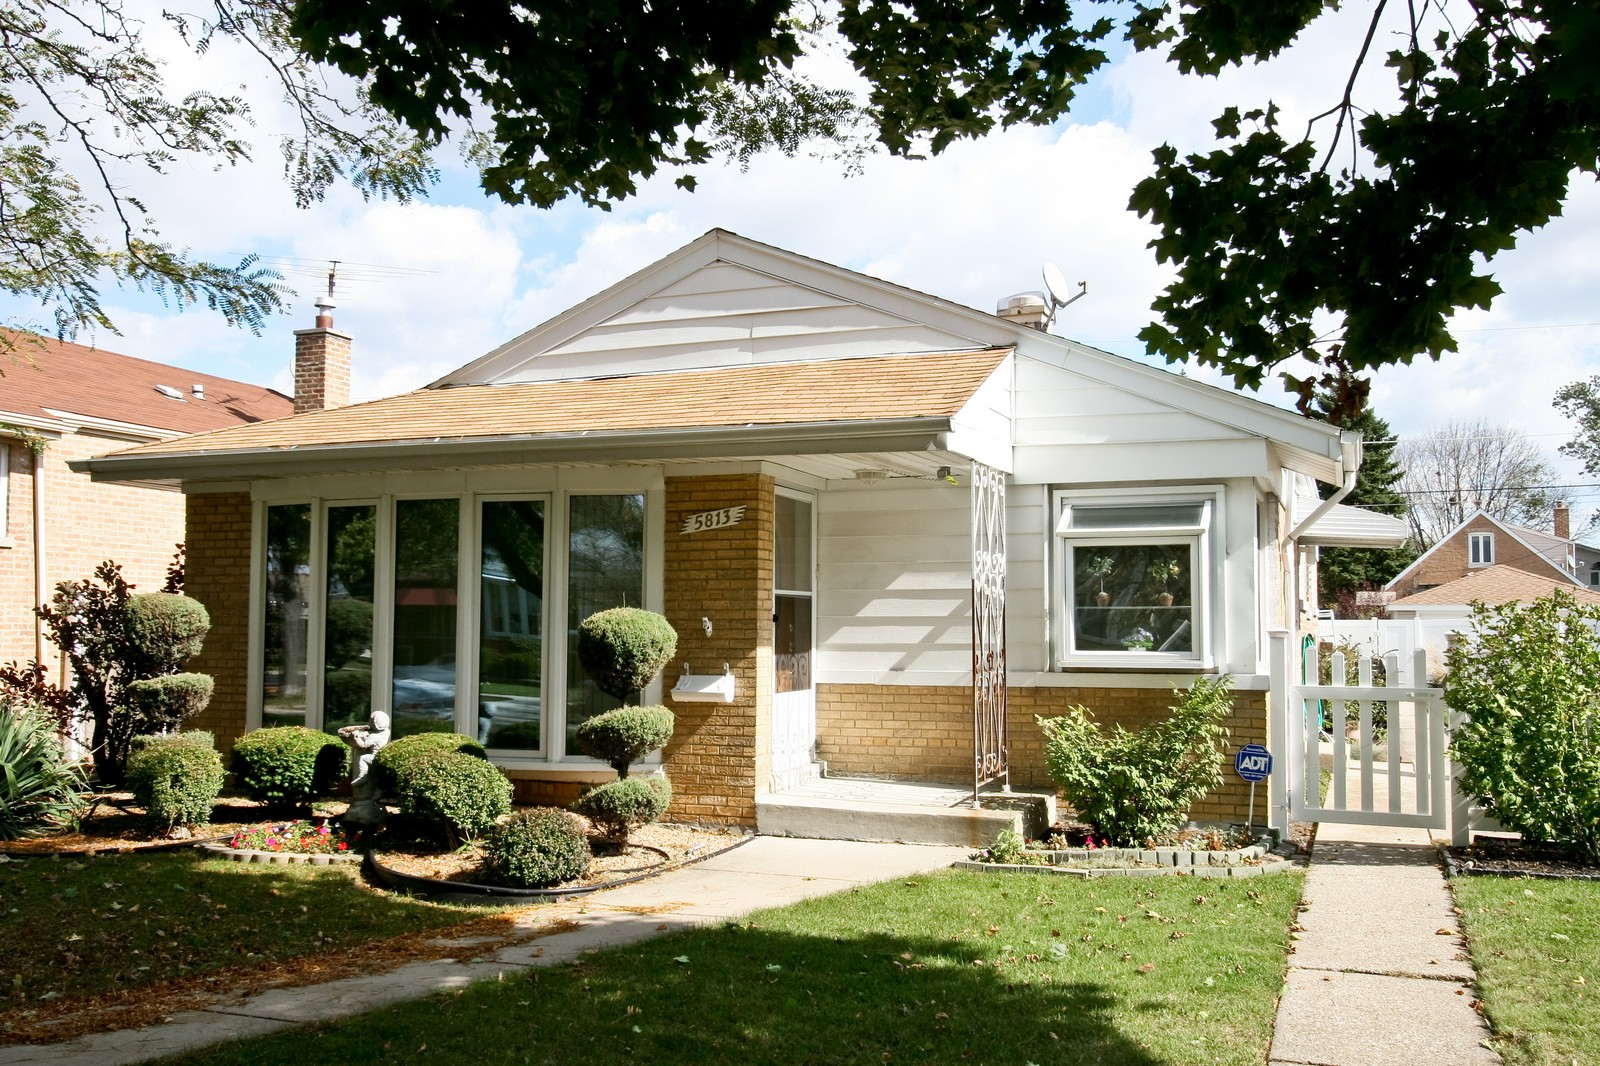 Real Estate Photography - 5813 S Natoma, Chicago, IL, 60638 - Front View